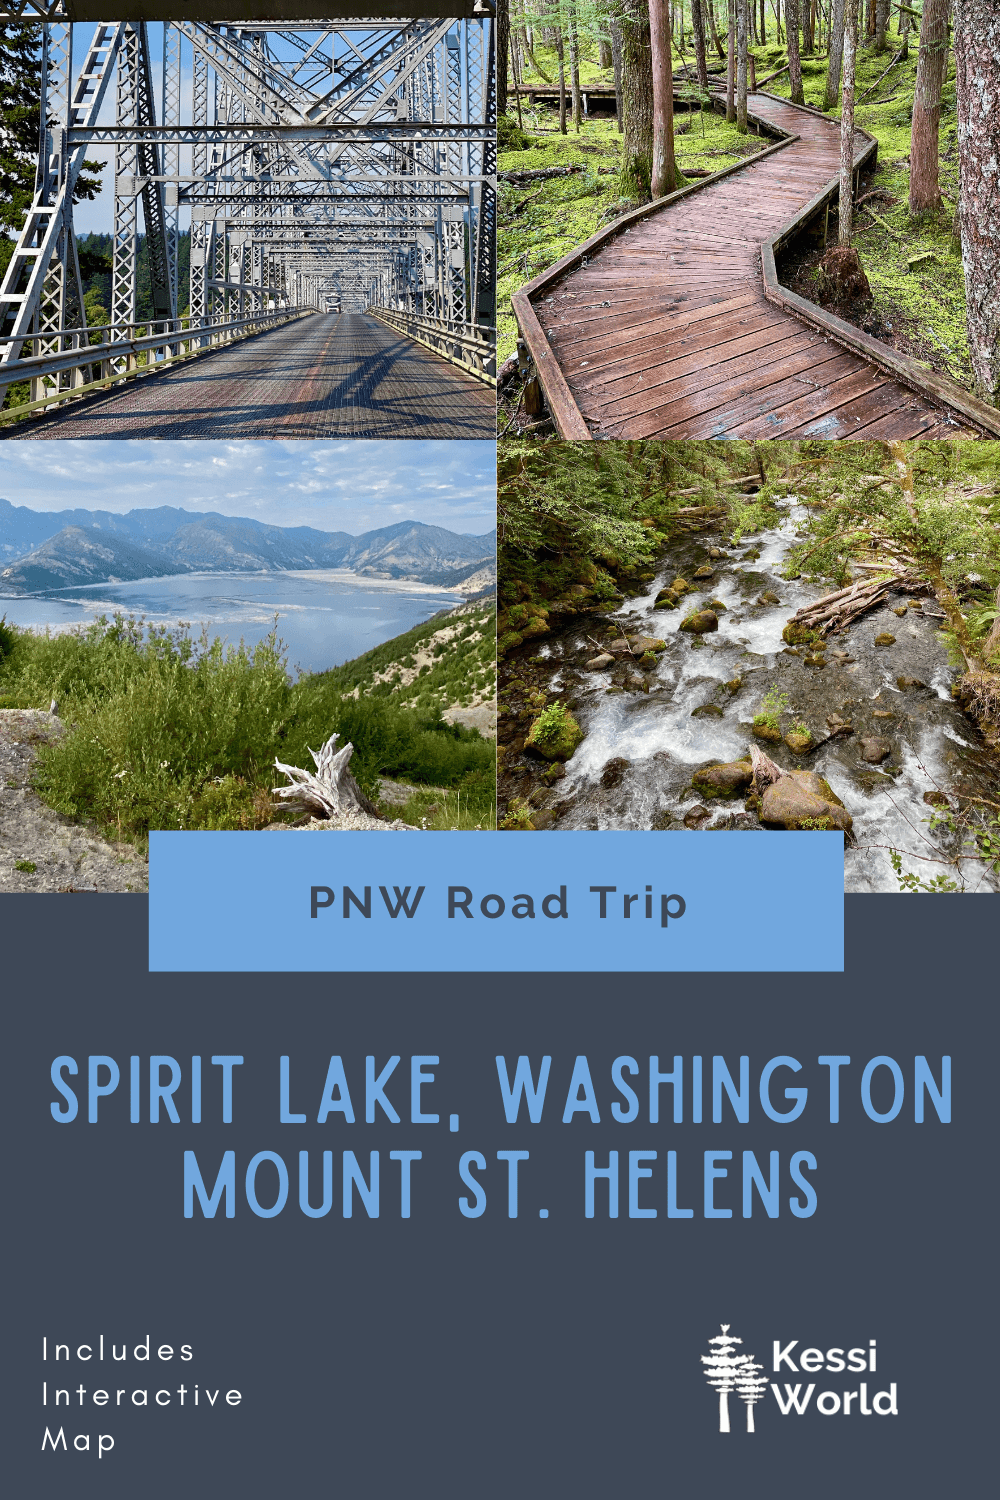 This Pinterest Pin talks about a Pacific Northwest Road Trip to Spirit Lake, Washington, which cuts through Mount St. Helens. The colors are blue and light blue and there are four small square photos of various natural features on the itinerary.